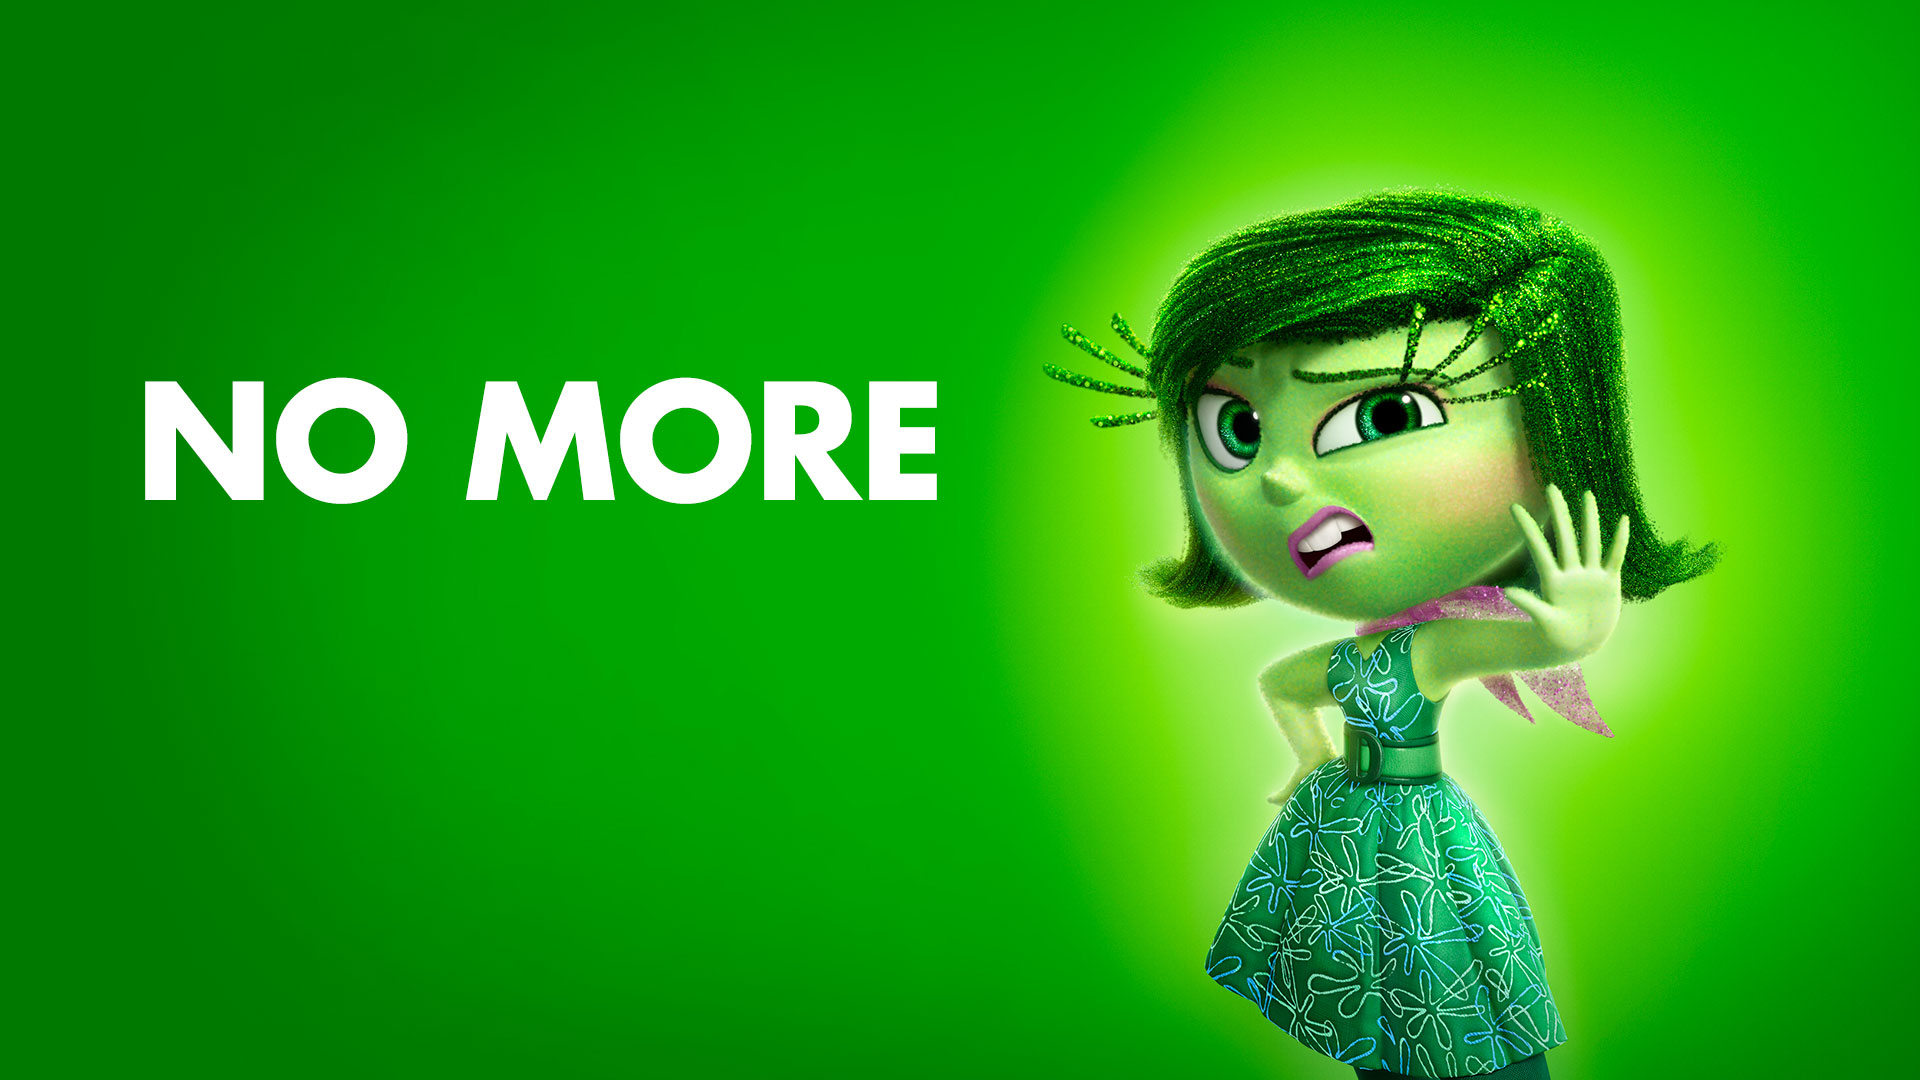 Inside Out Disgust - Wallpaper